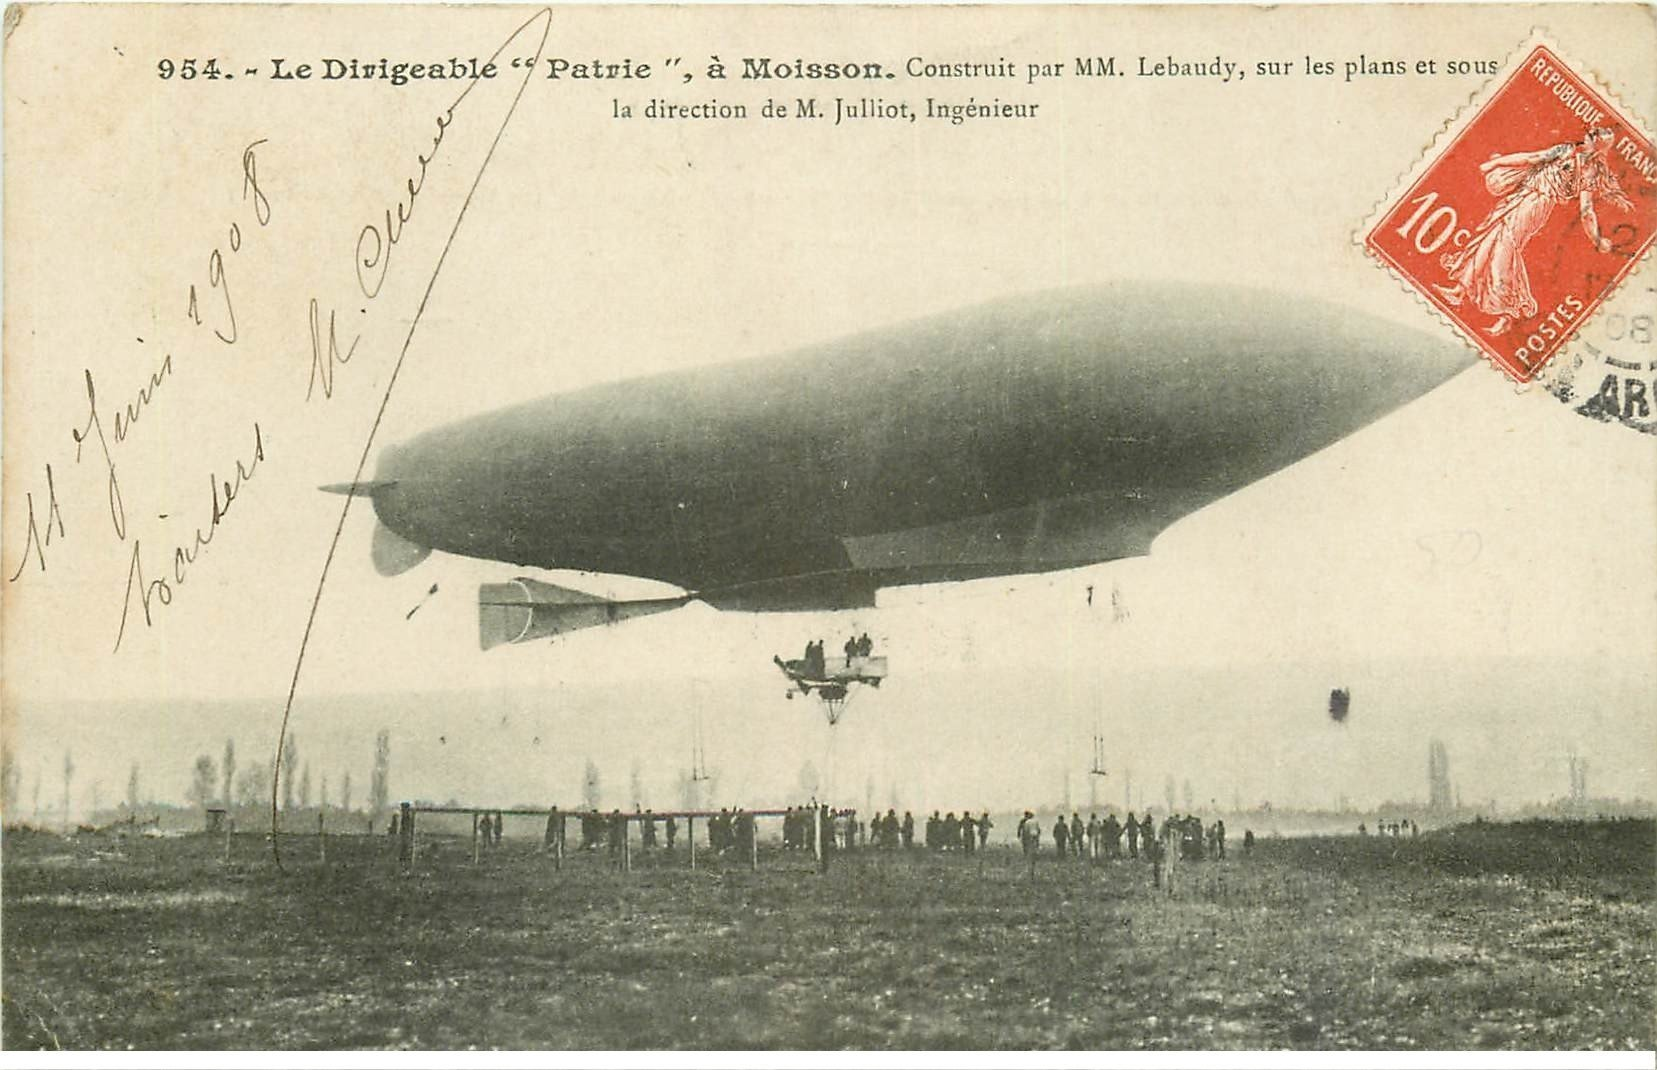 ballon dirigeable patrie